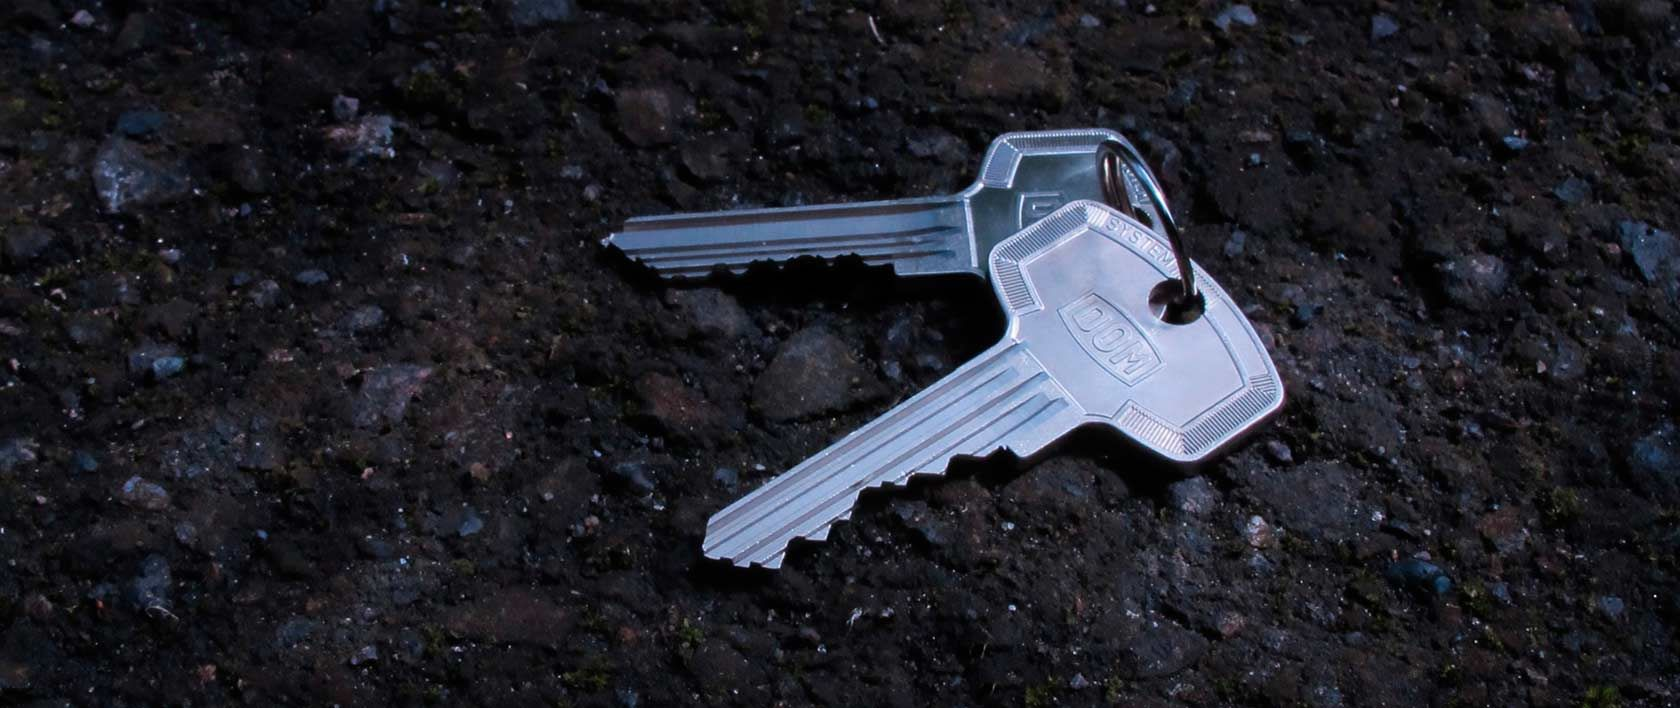 keys on the ground